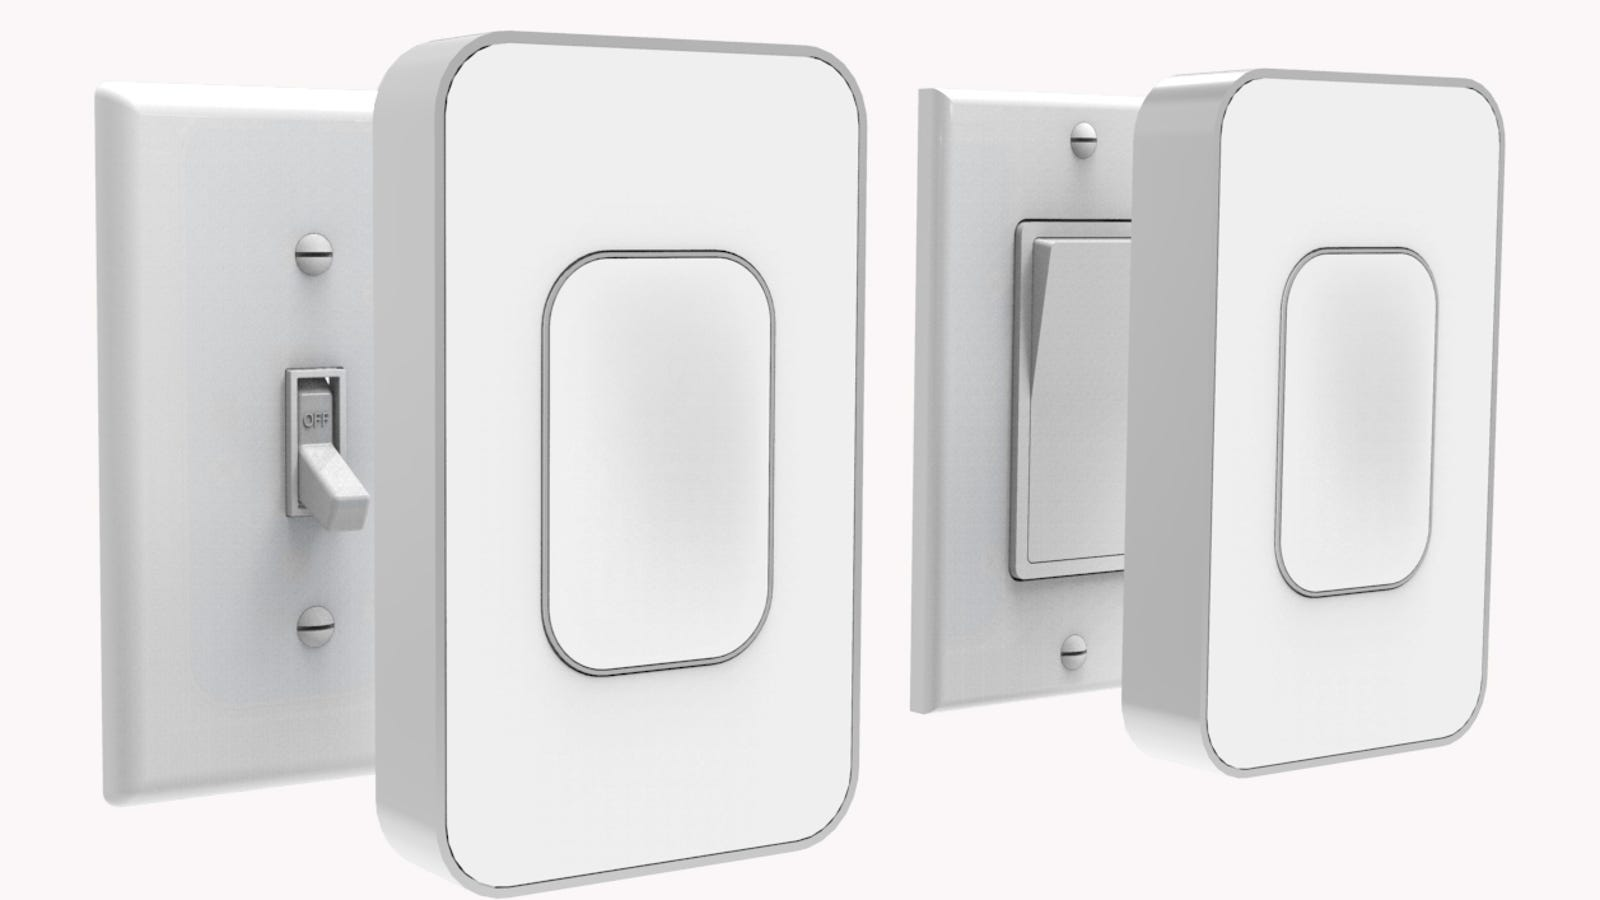 These Smart Light Switches Require Zero Wiring